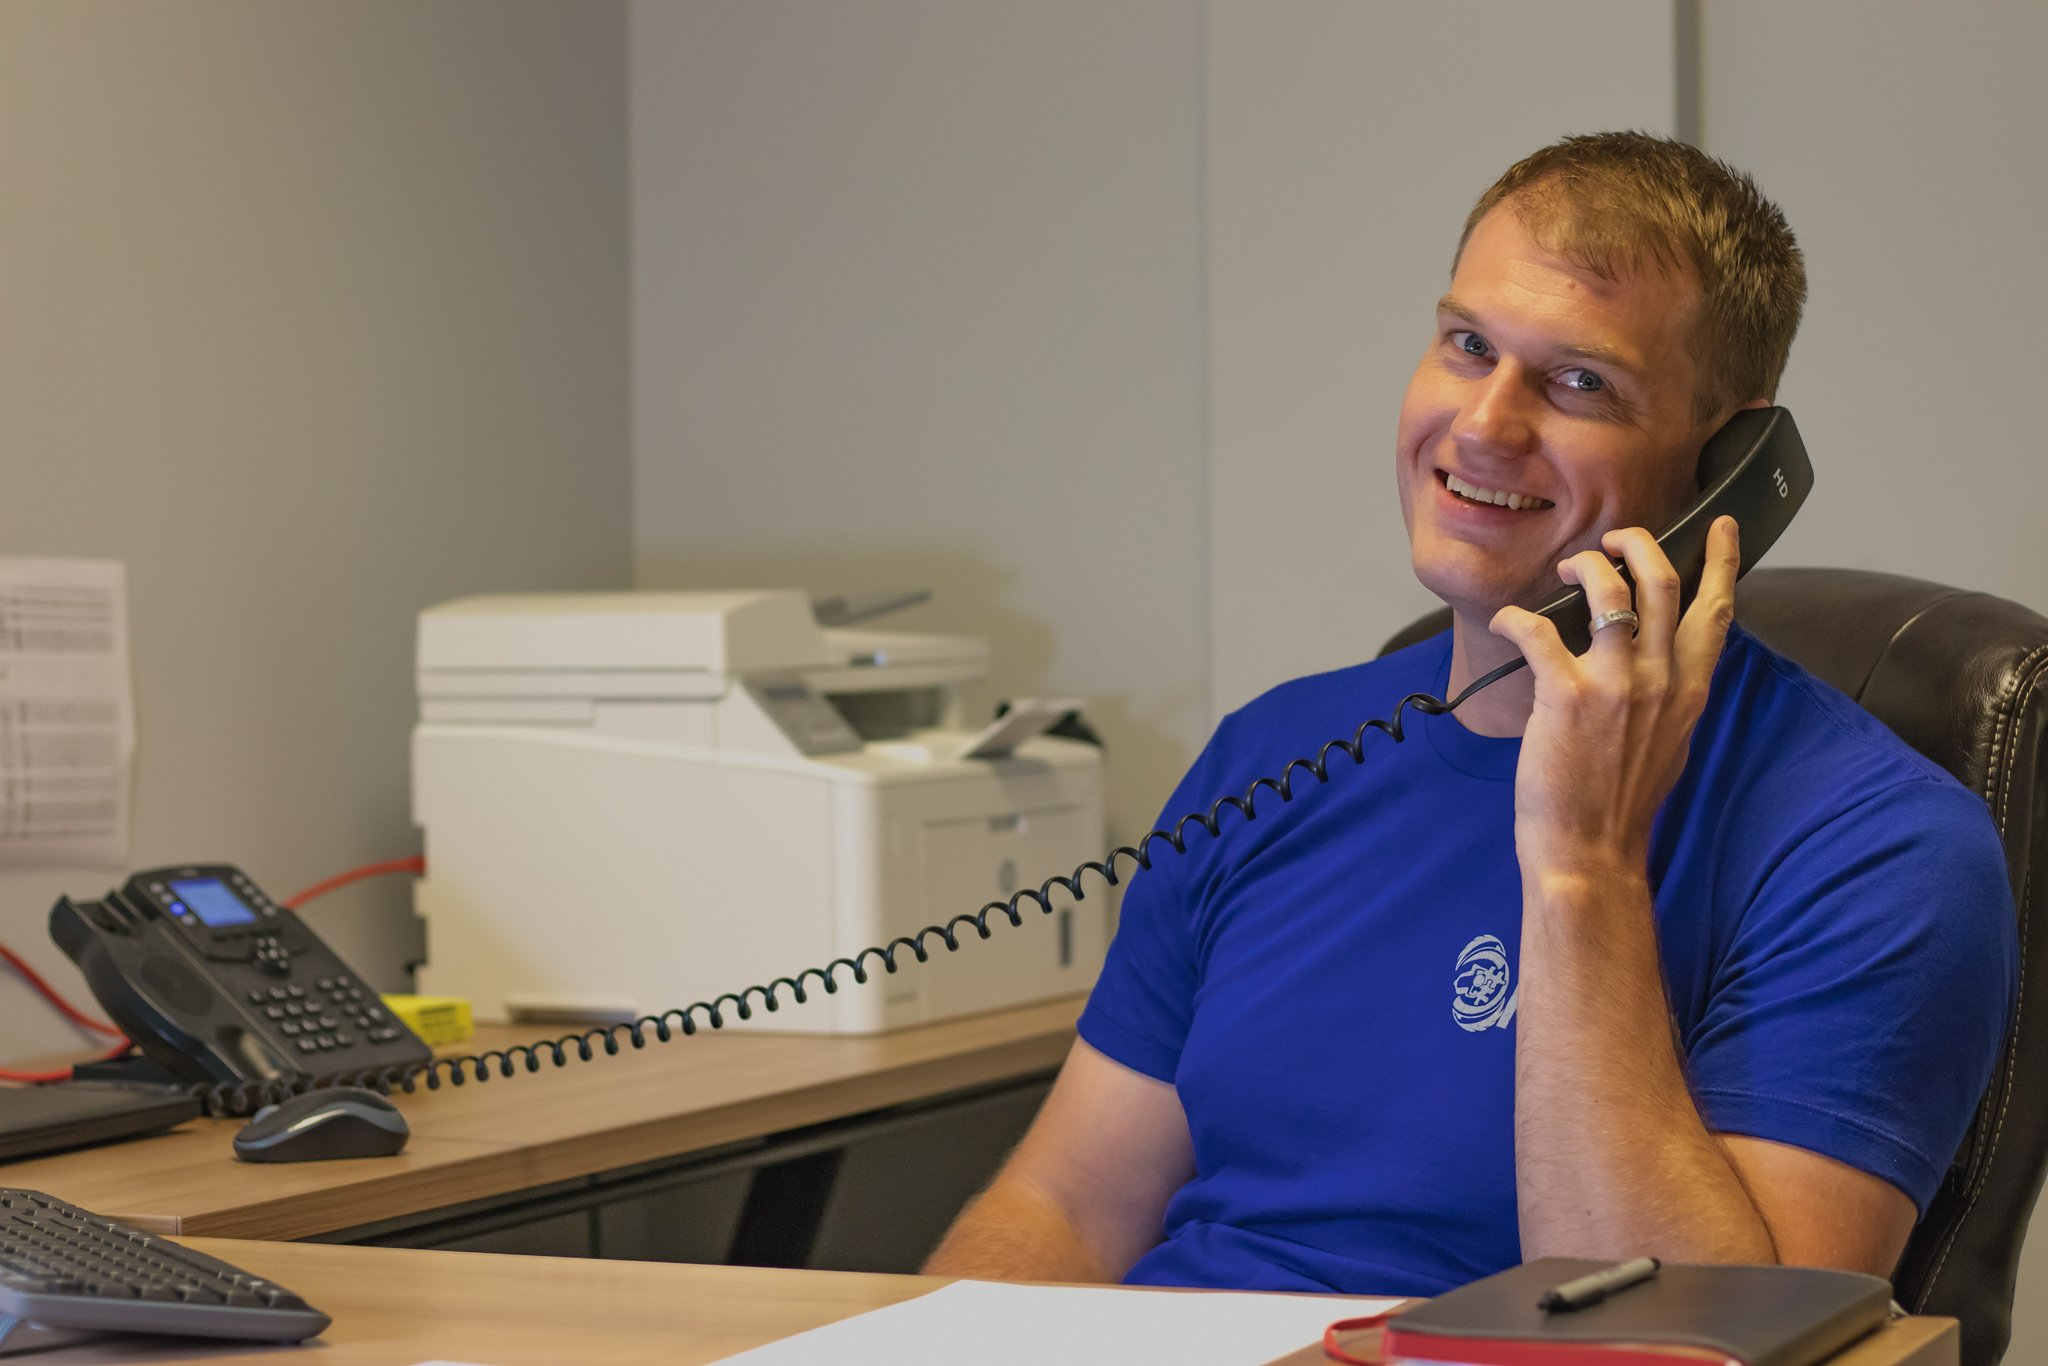 Account Manager, Grant, on the phone smiling